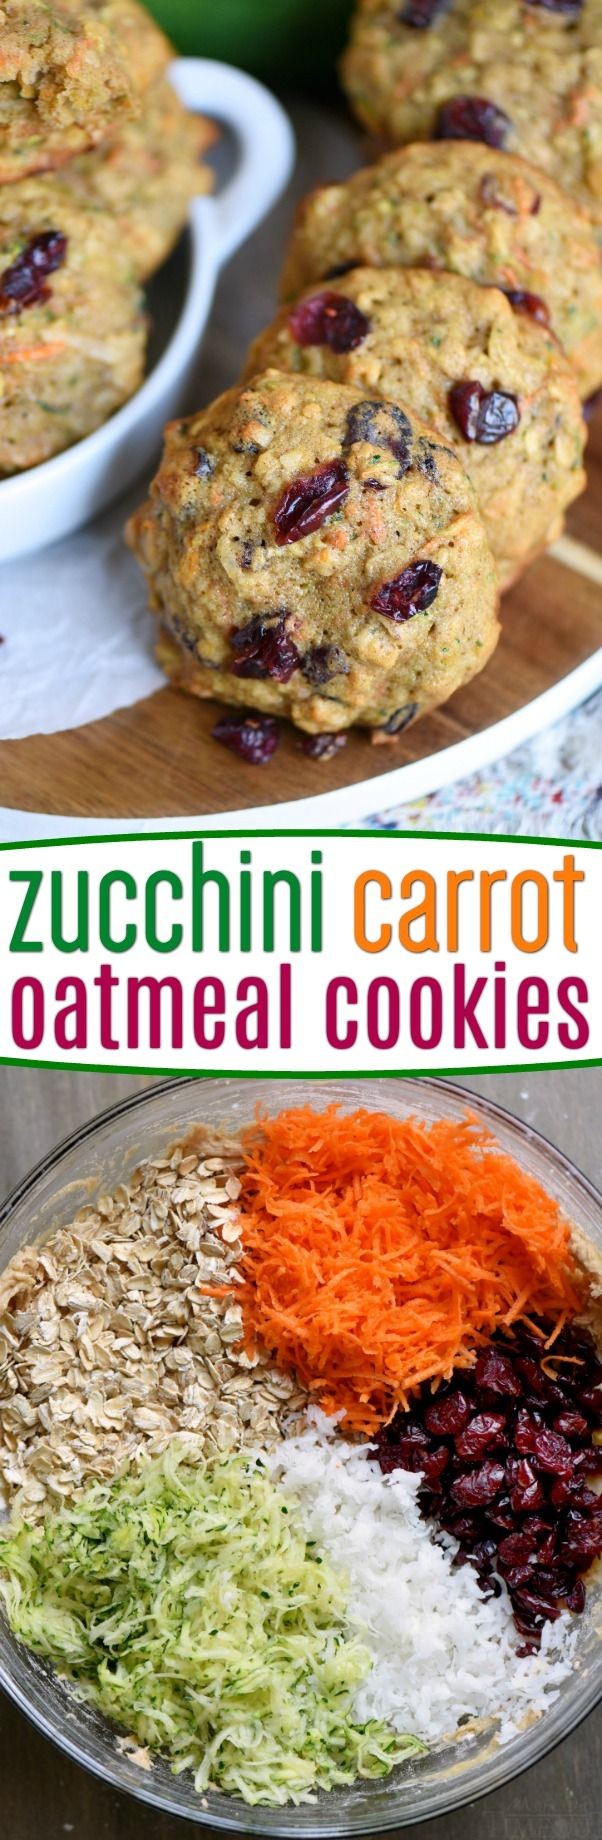 These amazing Zucchini Carrot Oatmeal Cookiesare packed full of zucchini, carrots, oatmeal, dried cranberries, and coconut! All the good stuff! The perfect after school snack! // Mom On Timeout